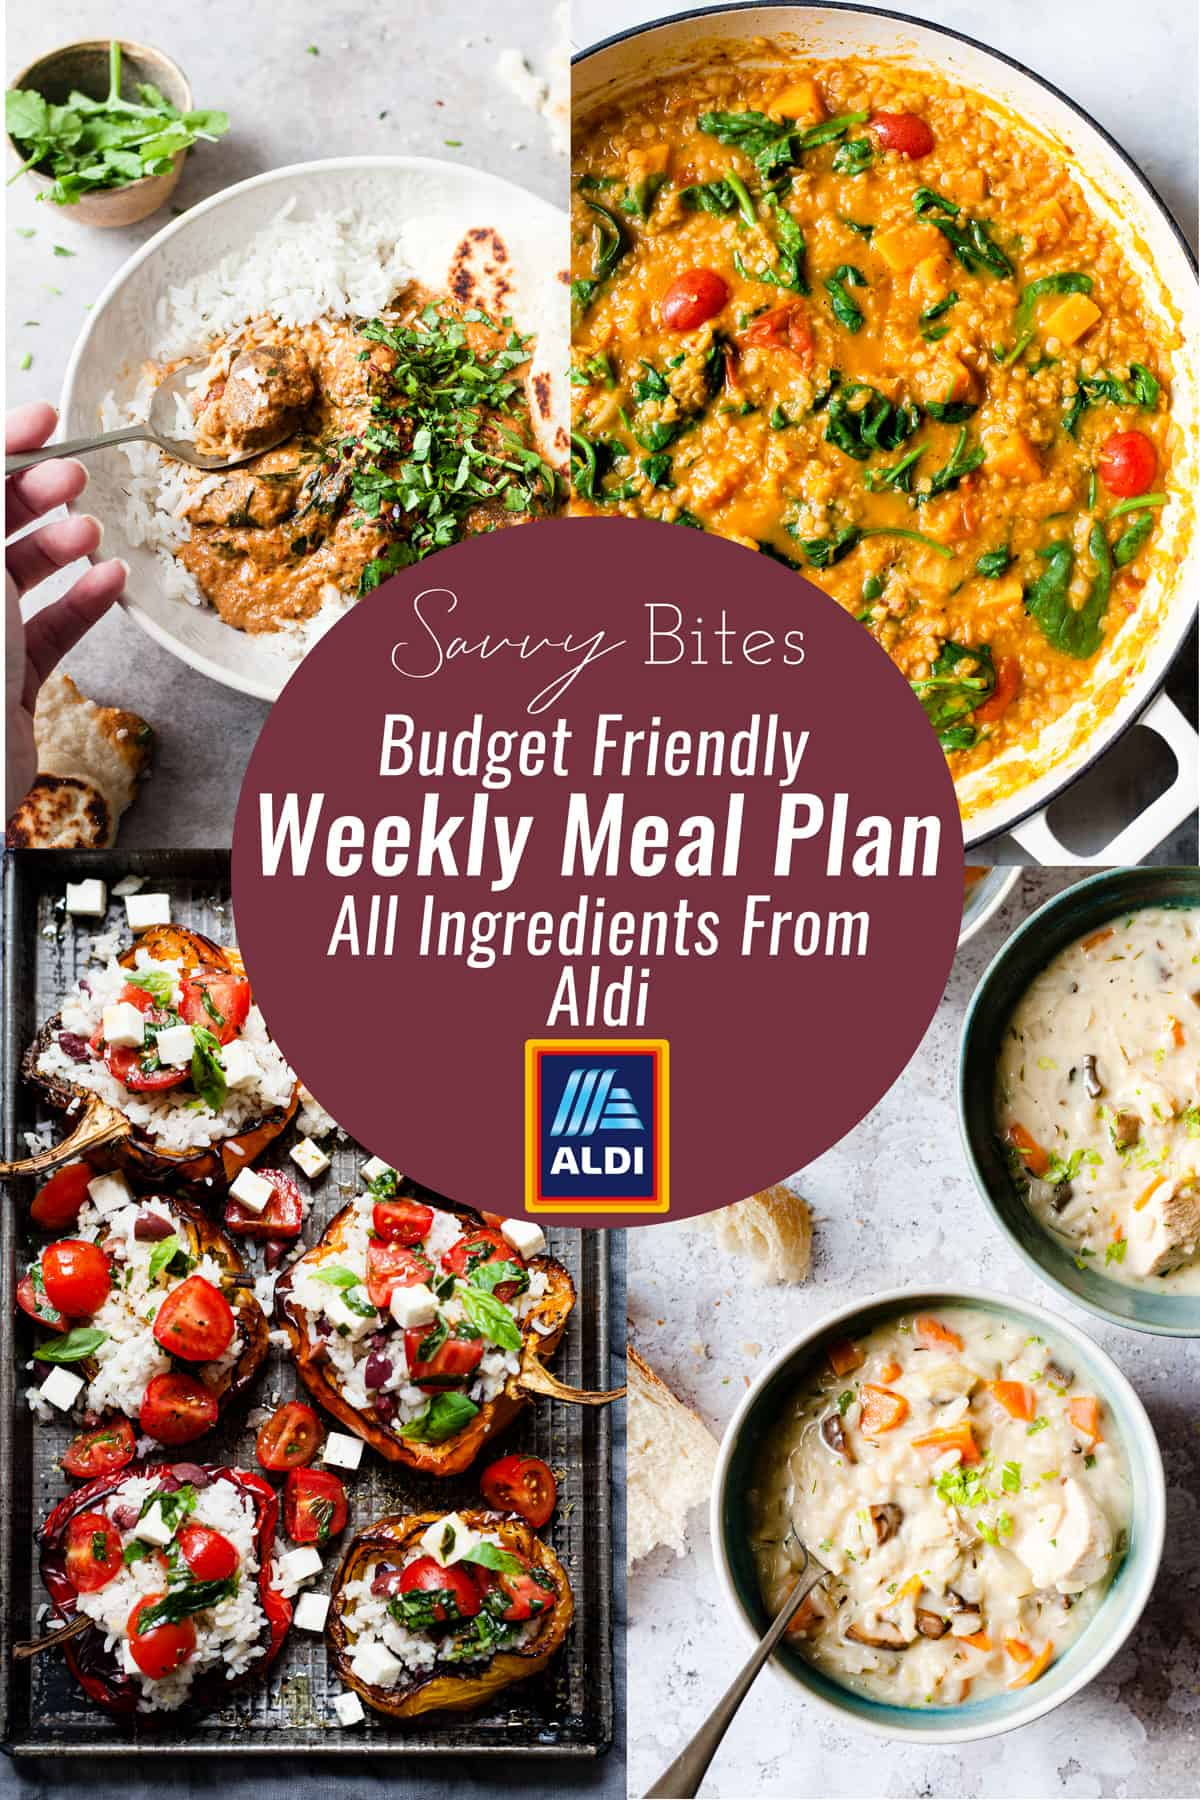 Aldi meal plan with budget friendly recipes.